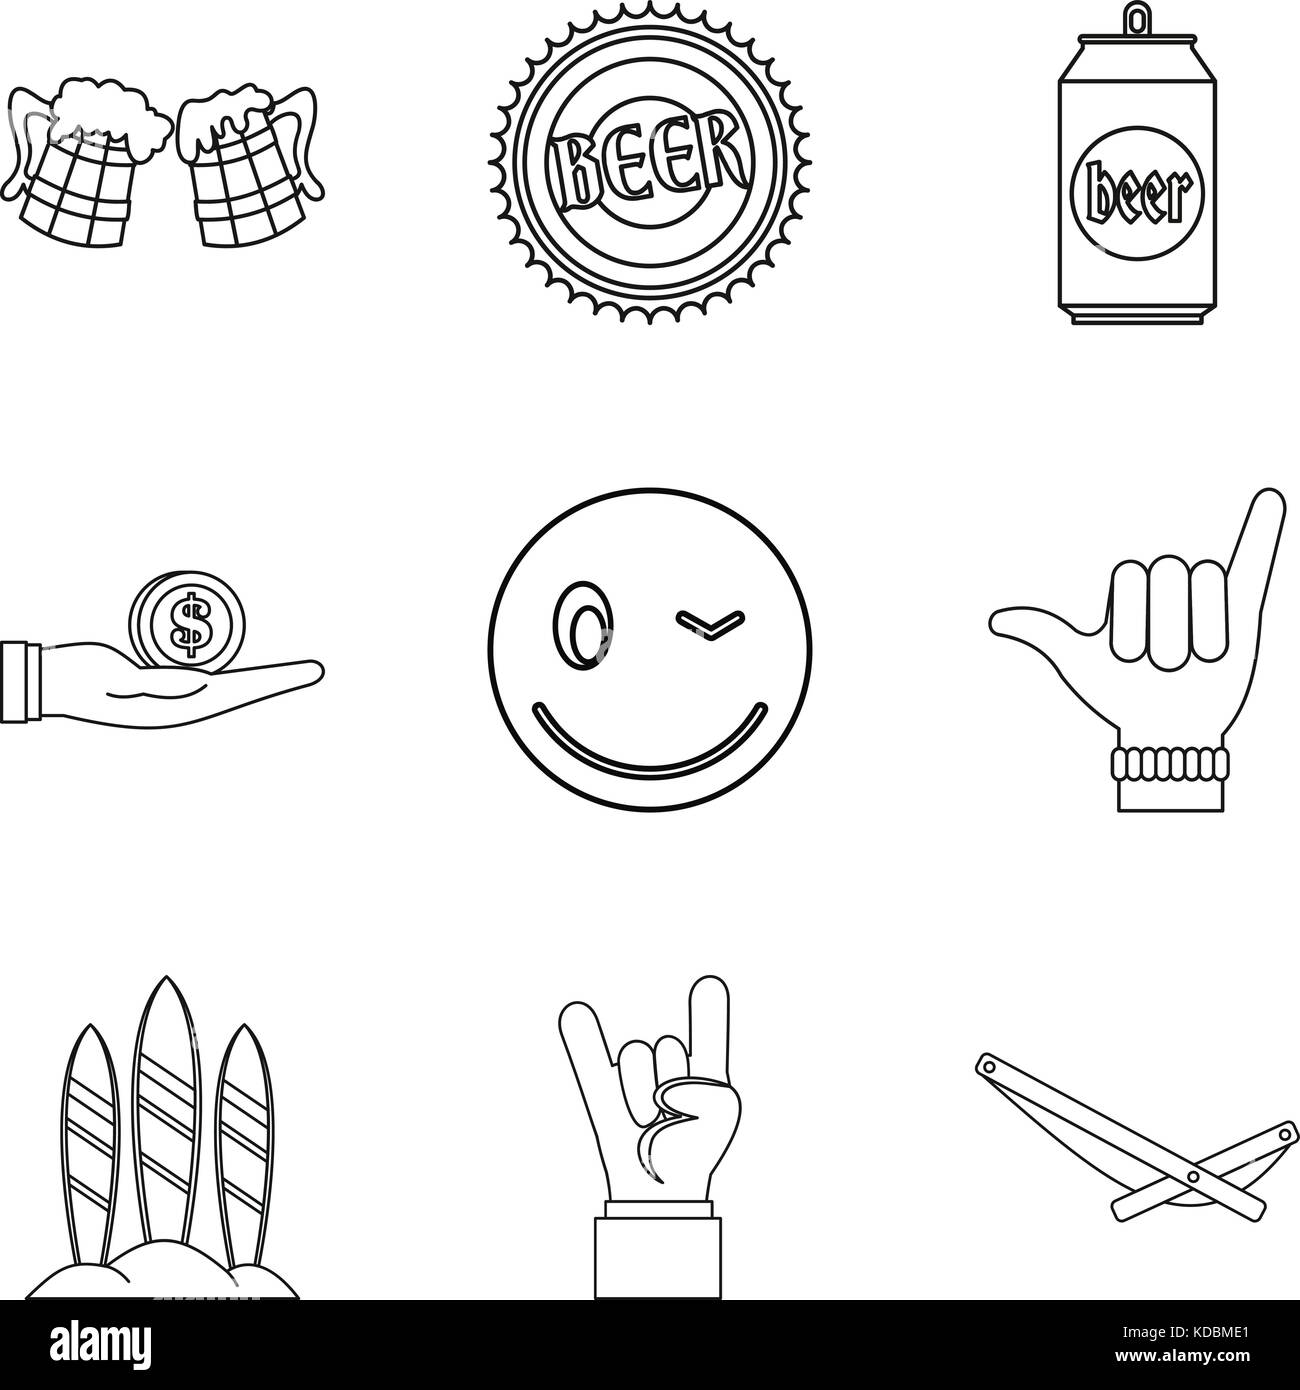 Bout icons set, outline style - Stock Image